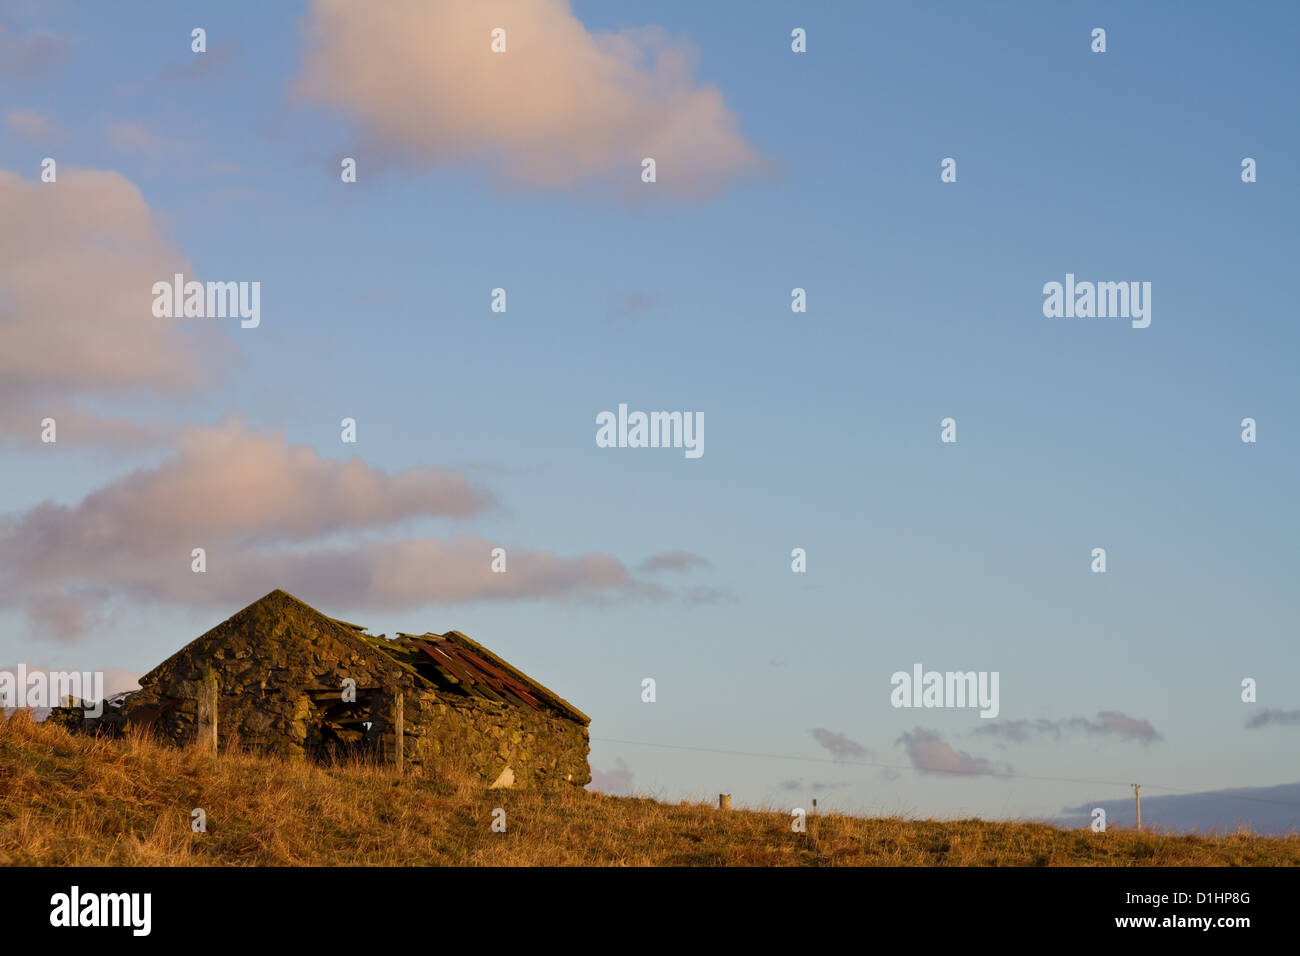 A ruined barn stands on the skyline, blue sky and fluffy white clouds above - Stock Image